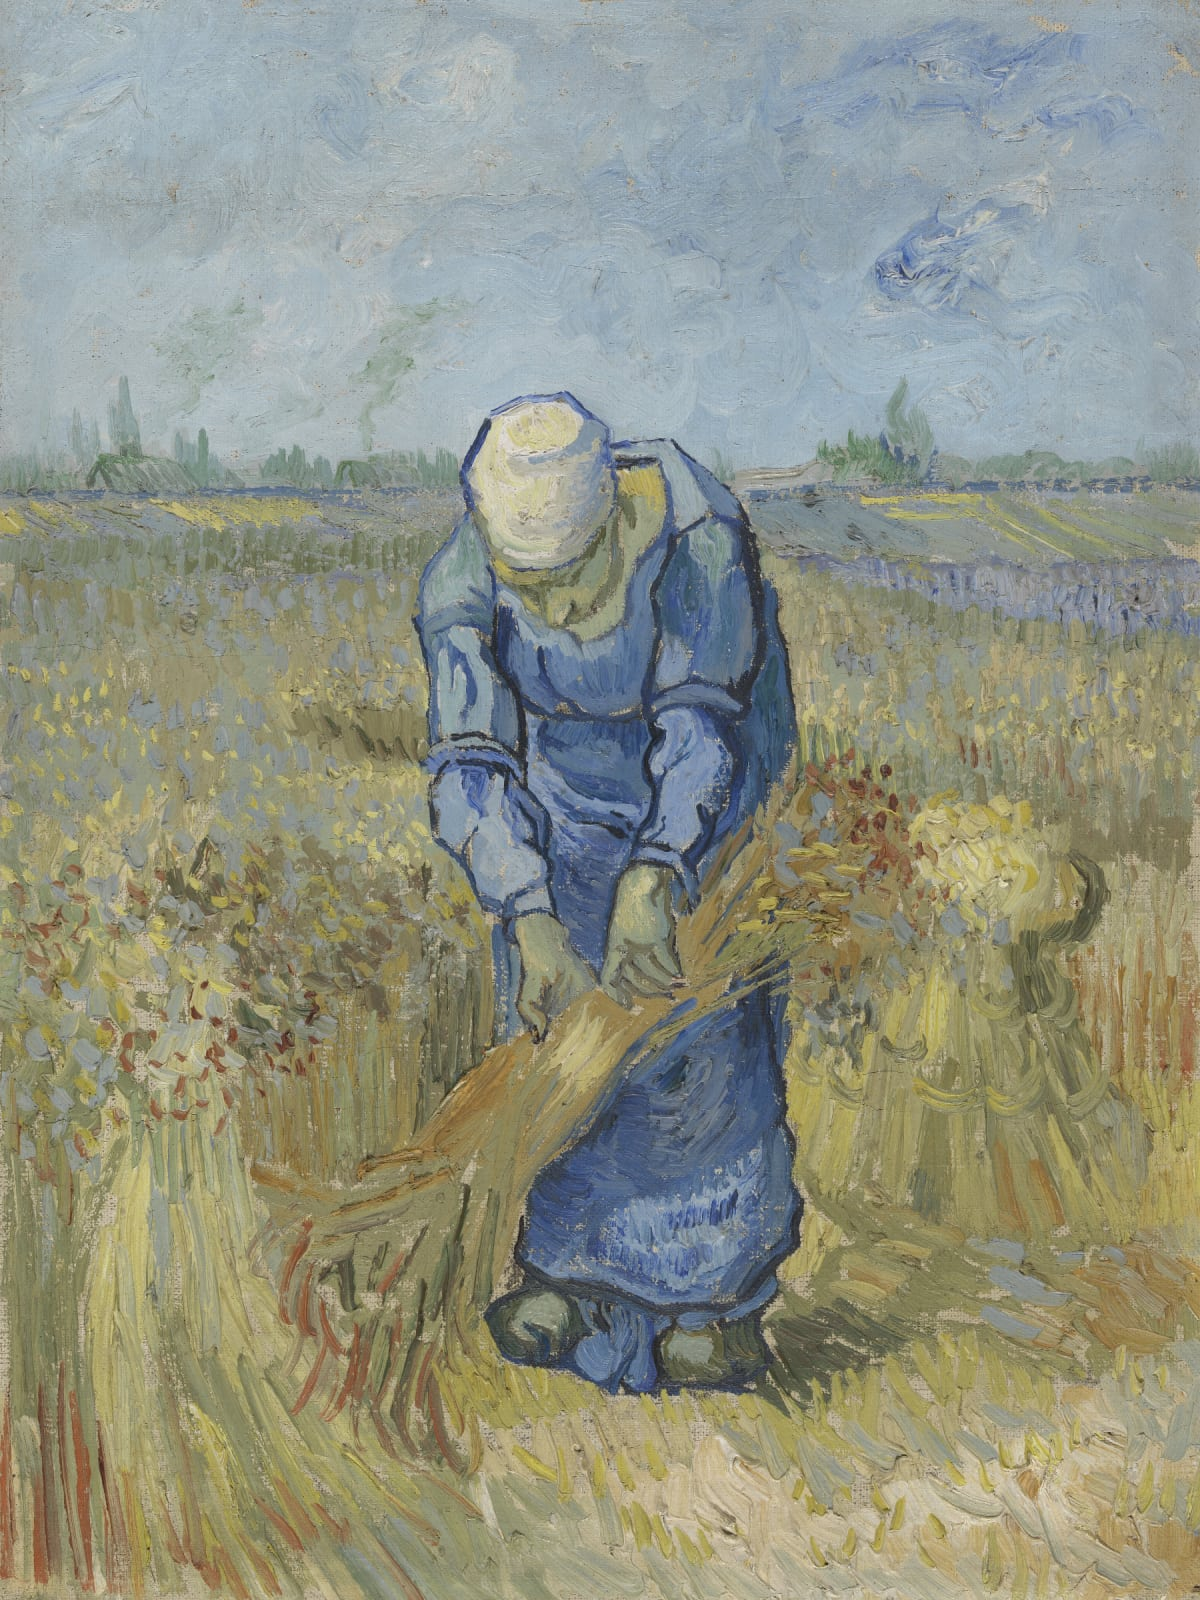 MFAH:Vincent van Gogh: His Life in Art, Peasant Woman Binding Sheaves (after Millet)